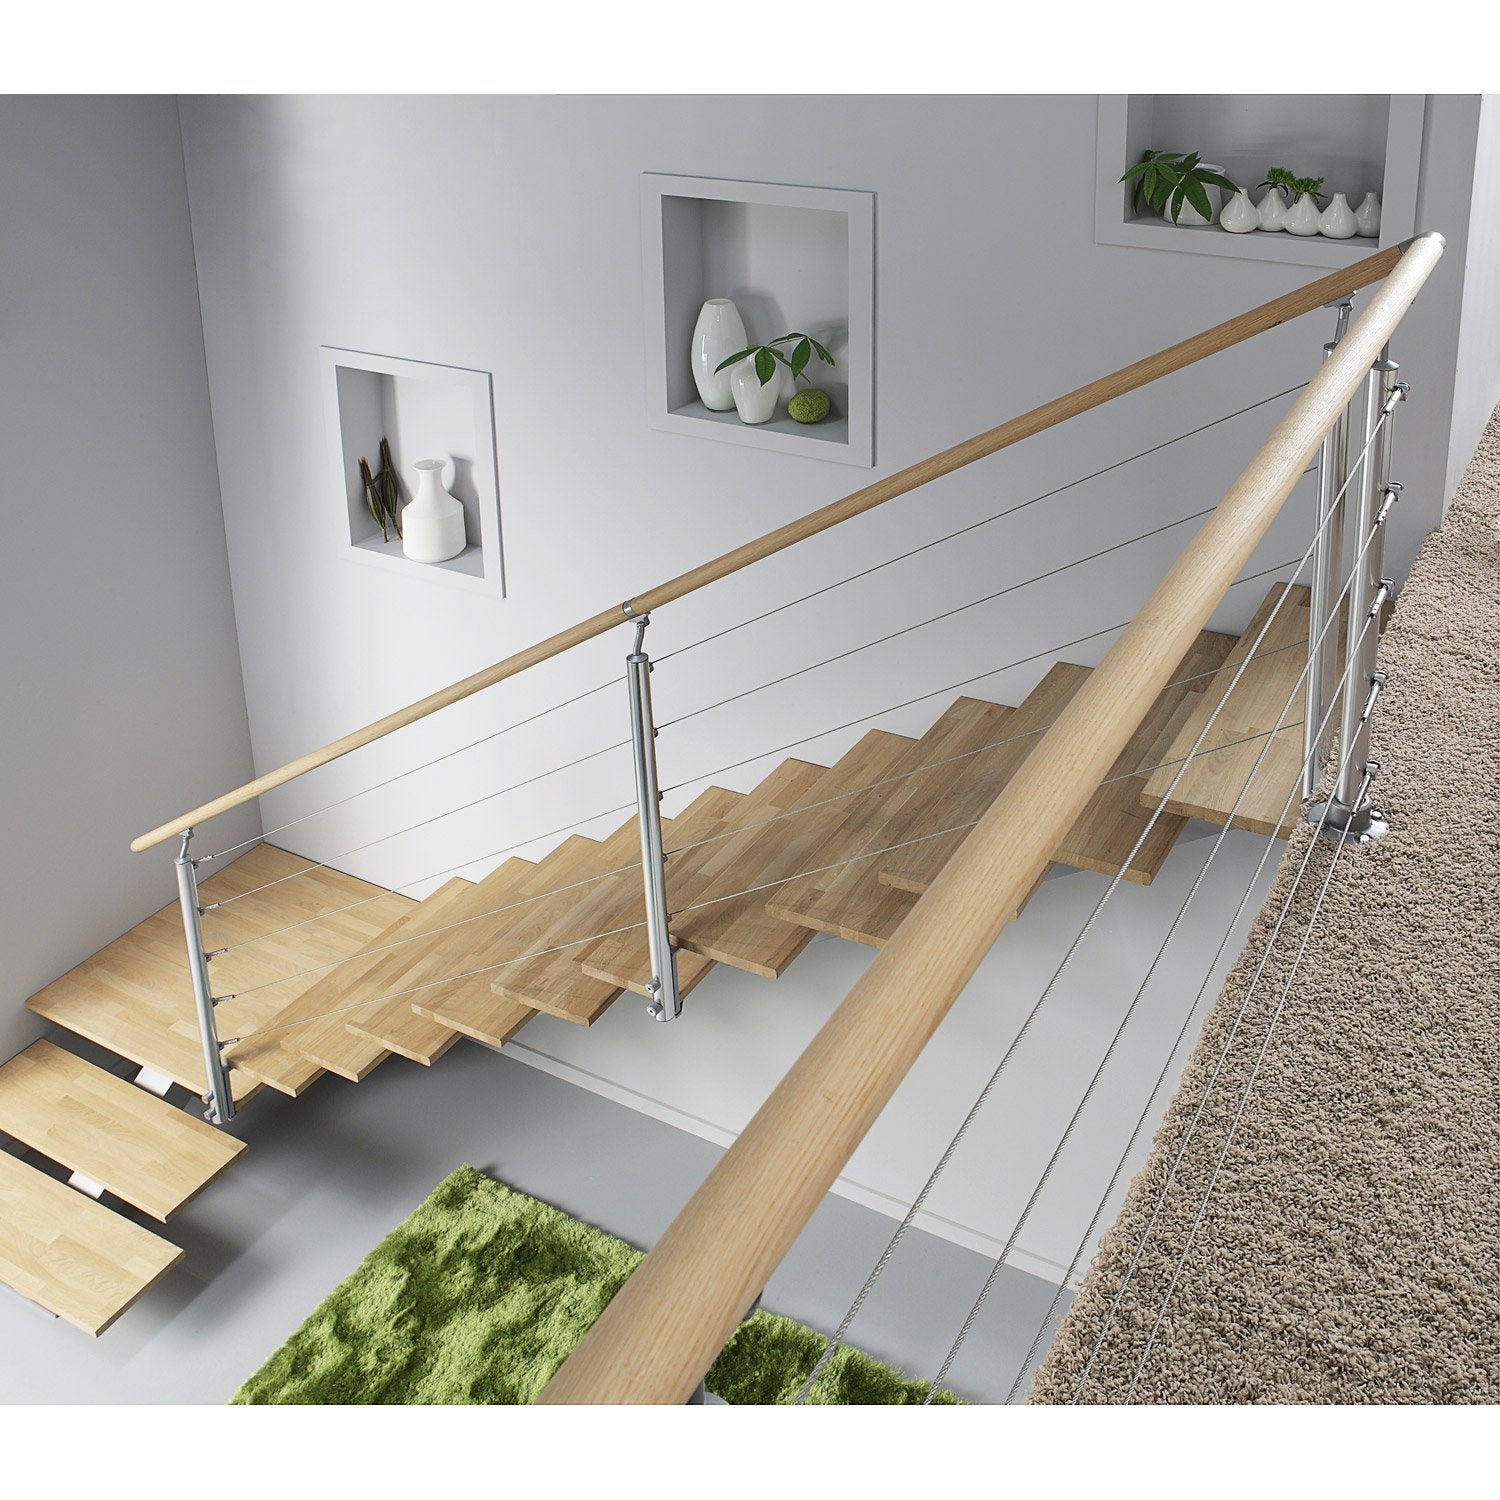 Balustrade quadro obapi leroy merlin - Pose escalier escamotable leroy merlin ...